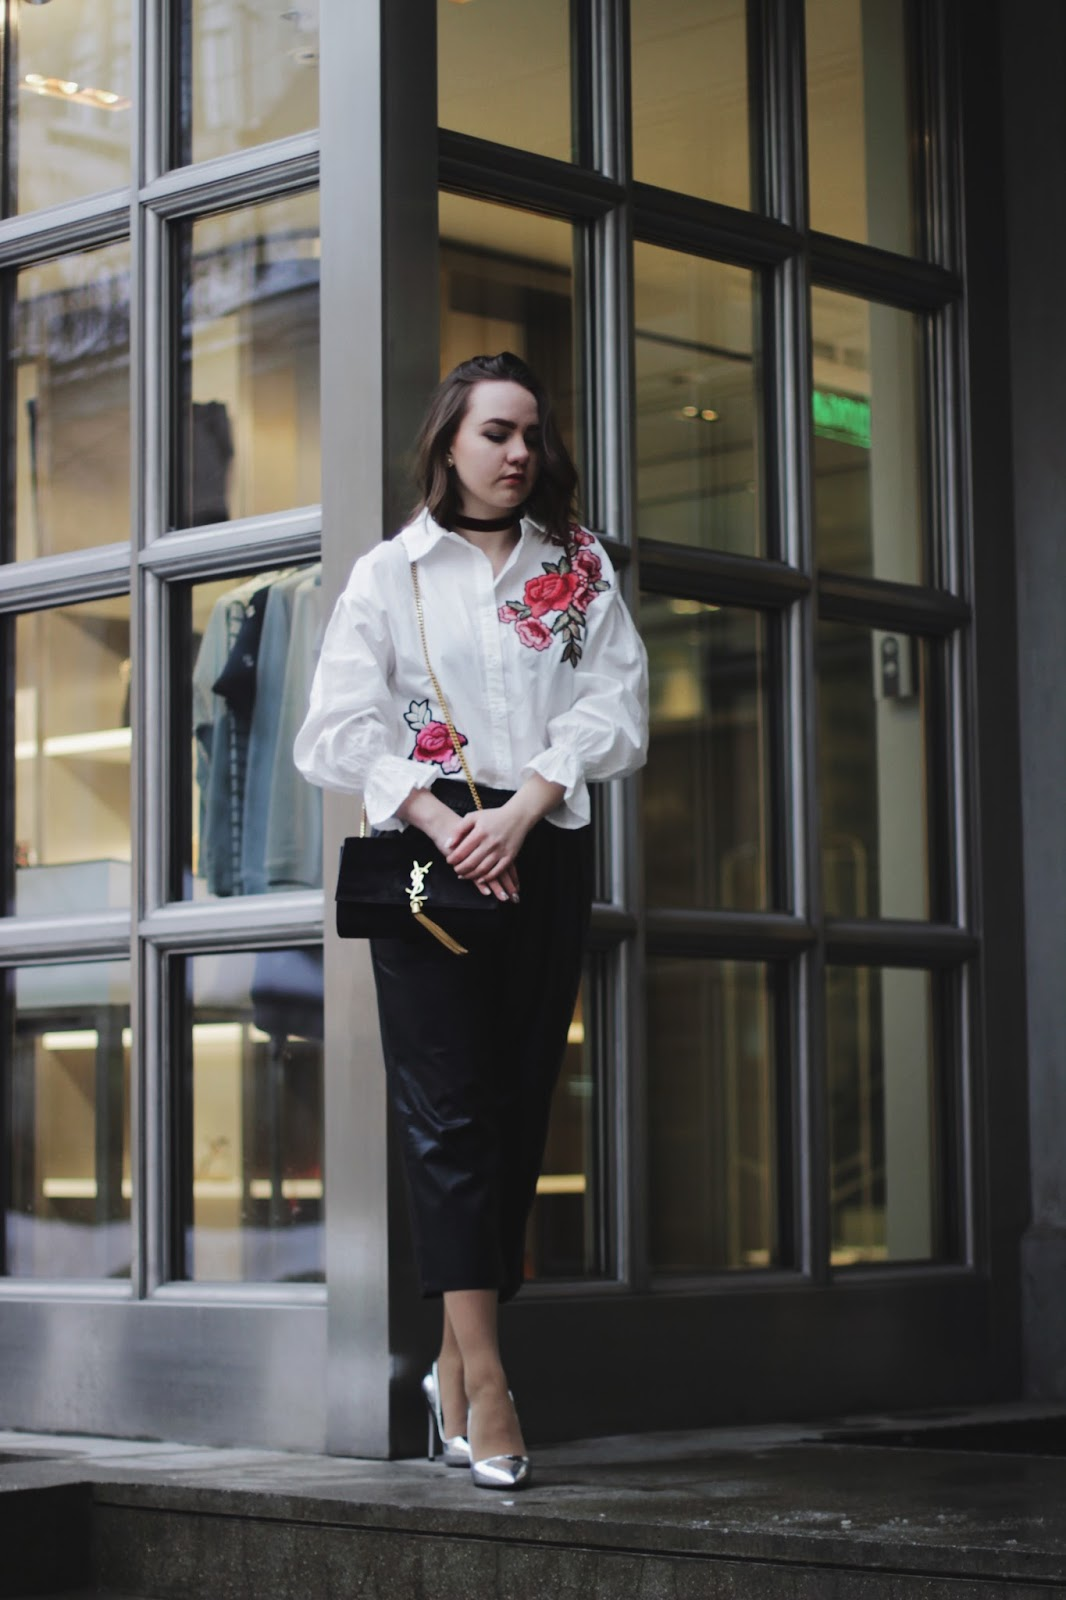 Embroidery Shirt | YSL Bag | Fashion Blogger